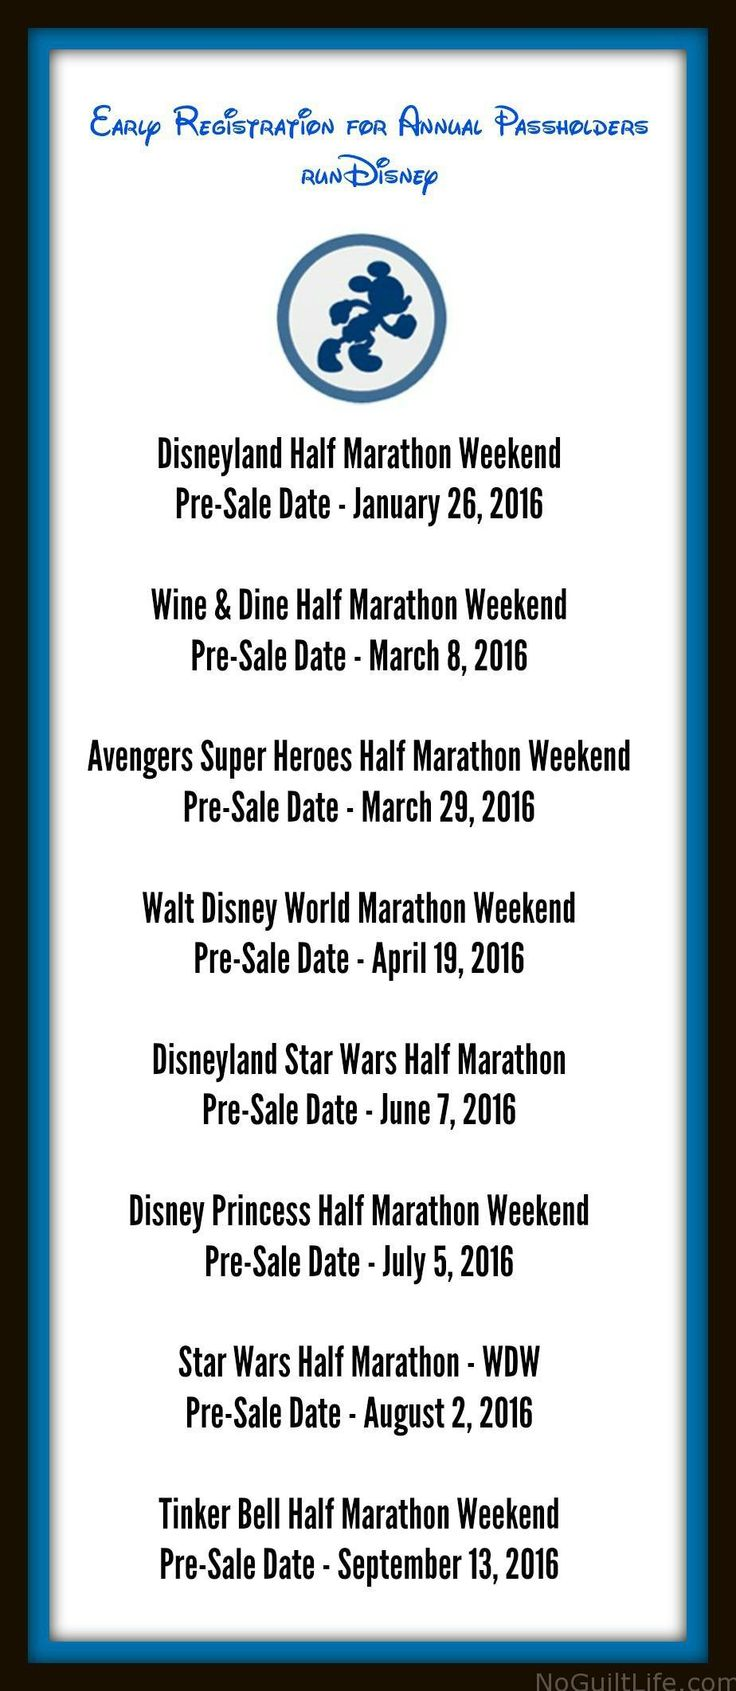 runDisney Annual Passholder Registration Dates 2016 - My No-Guilt Life | My No-Guilt Life